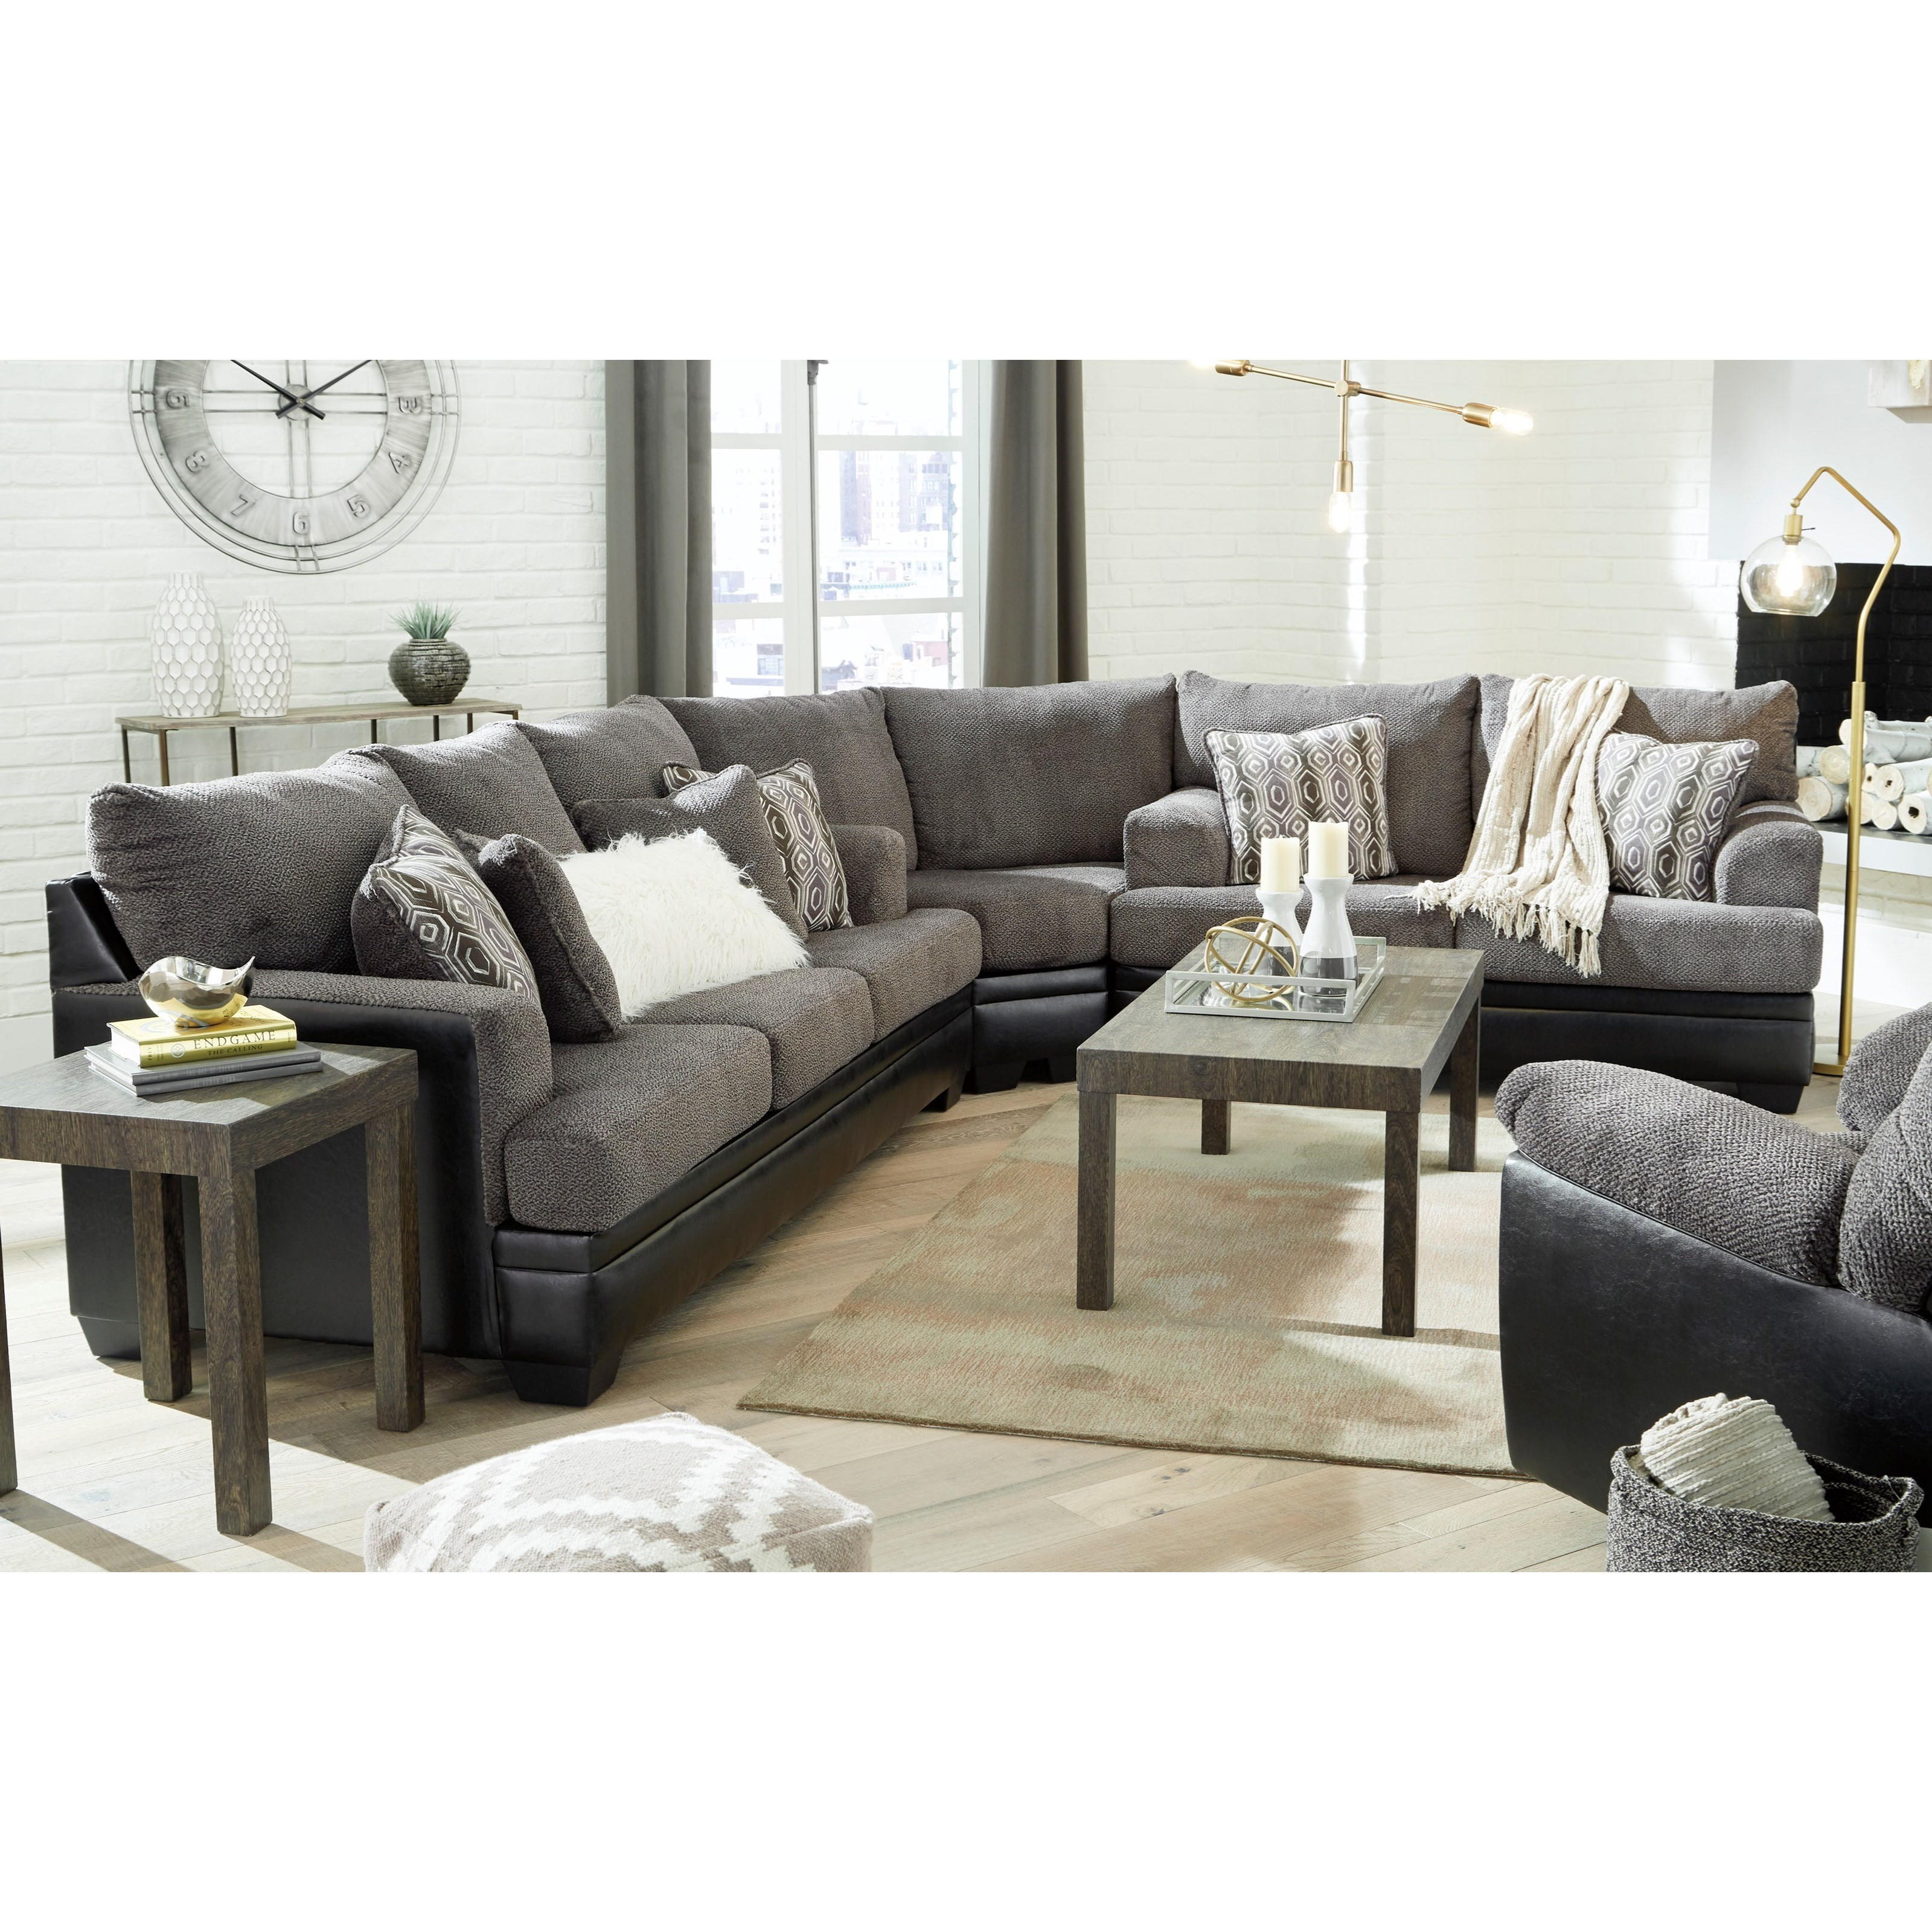 Contemporary Sectional With Sleeper Sofa By Signature Design By Ashley Wolf Furniture